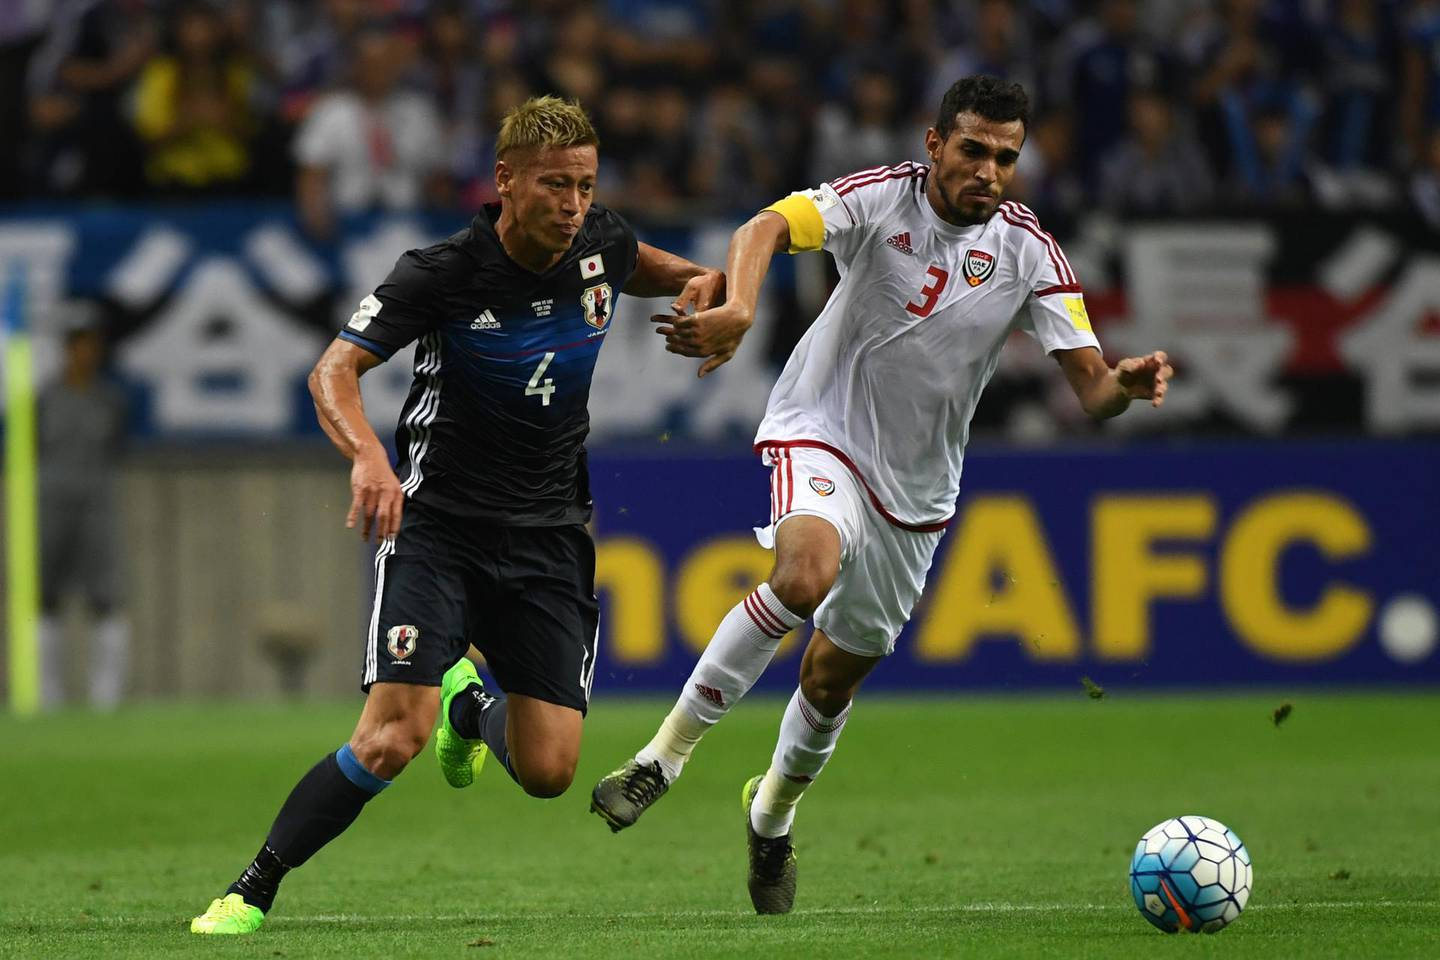 SAITAMA, JAPAN - SEPTEMBER 01: Walid Abbas of United Arab Emirates#3 and Keisuke Honda of Japan#4 compete for the ball during the 2018 FIFA World Cup Qualifiers Group B match between Japan and United Arab Emirates at Saitama Stadium on September 1, 2016 in Saitama, Japan. (Photo by Etsuo Hara/Getty Images)